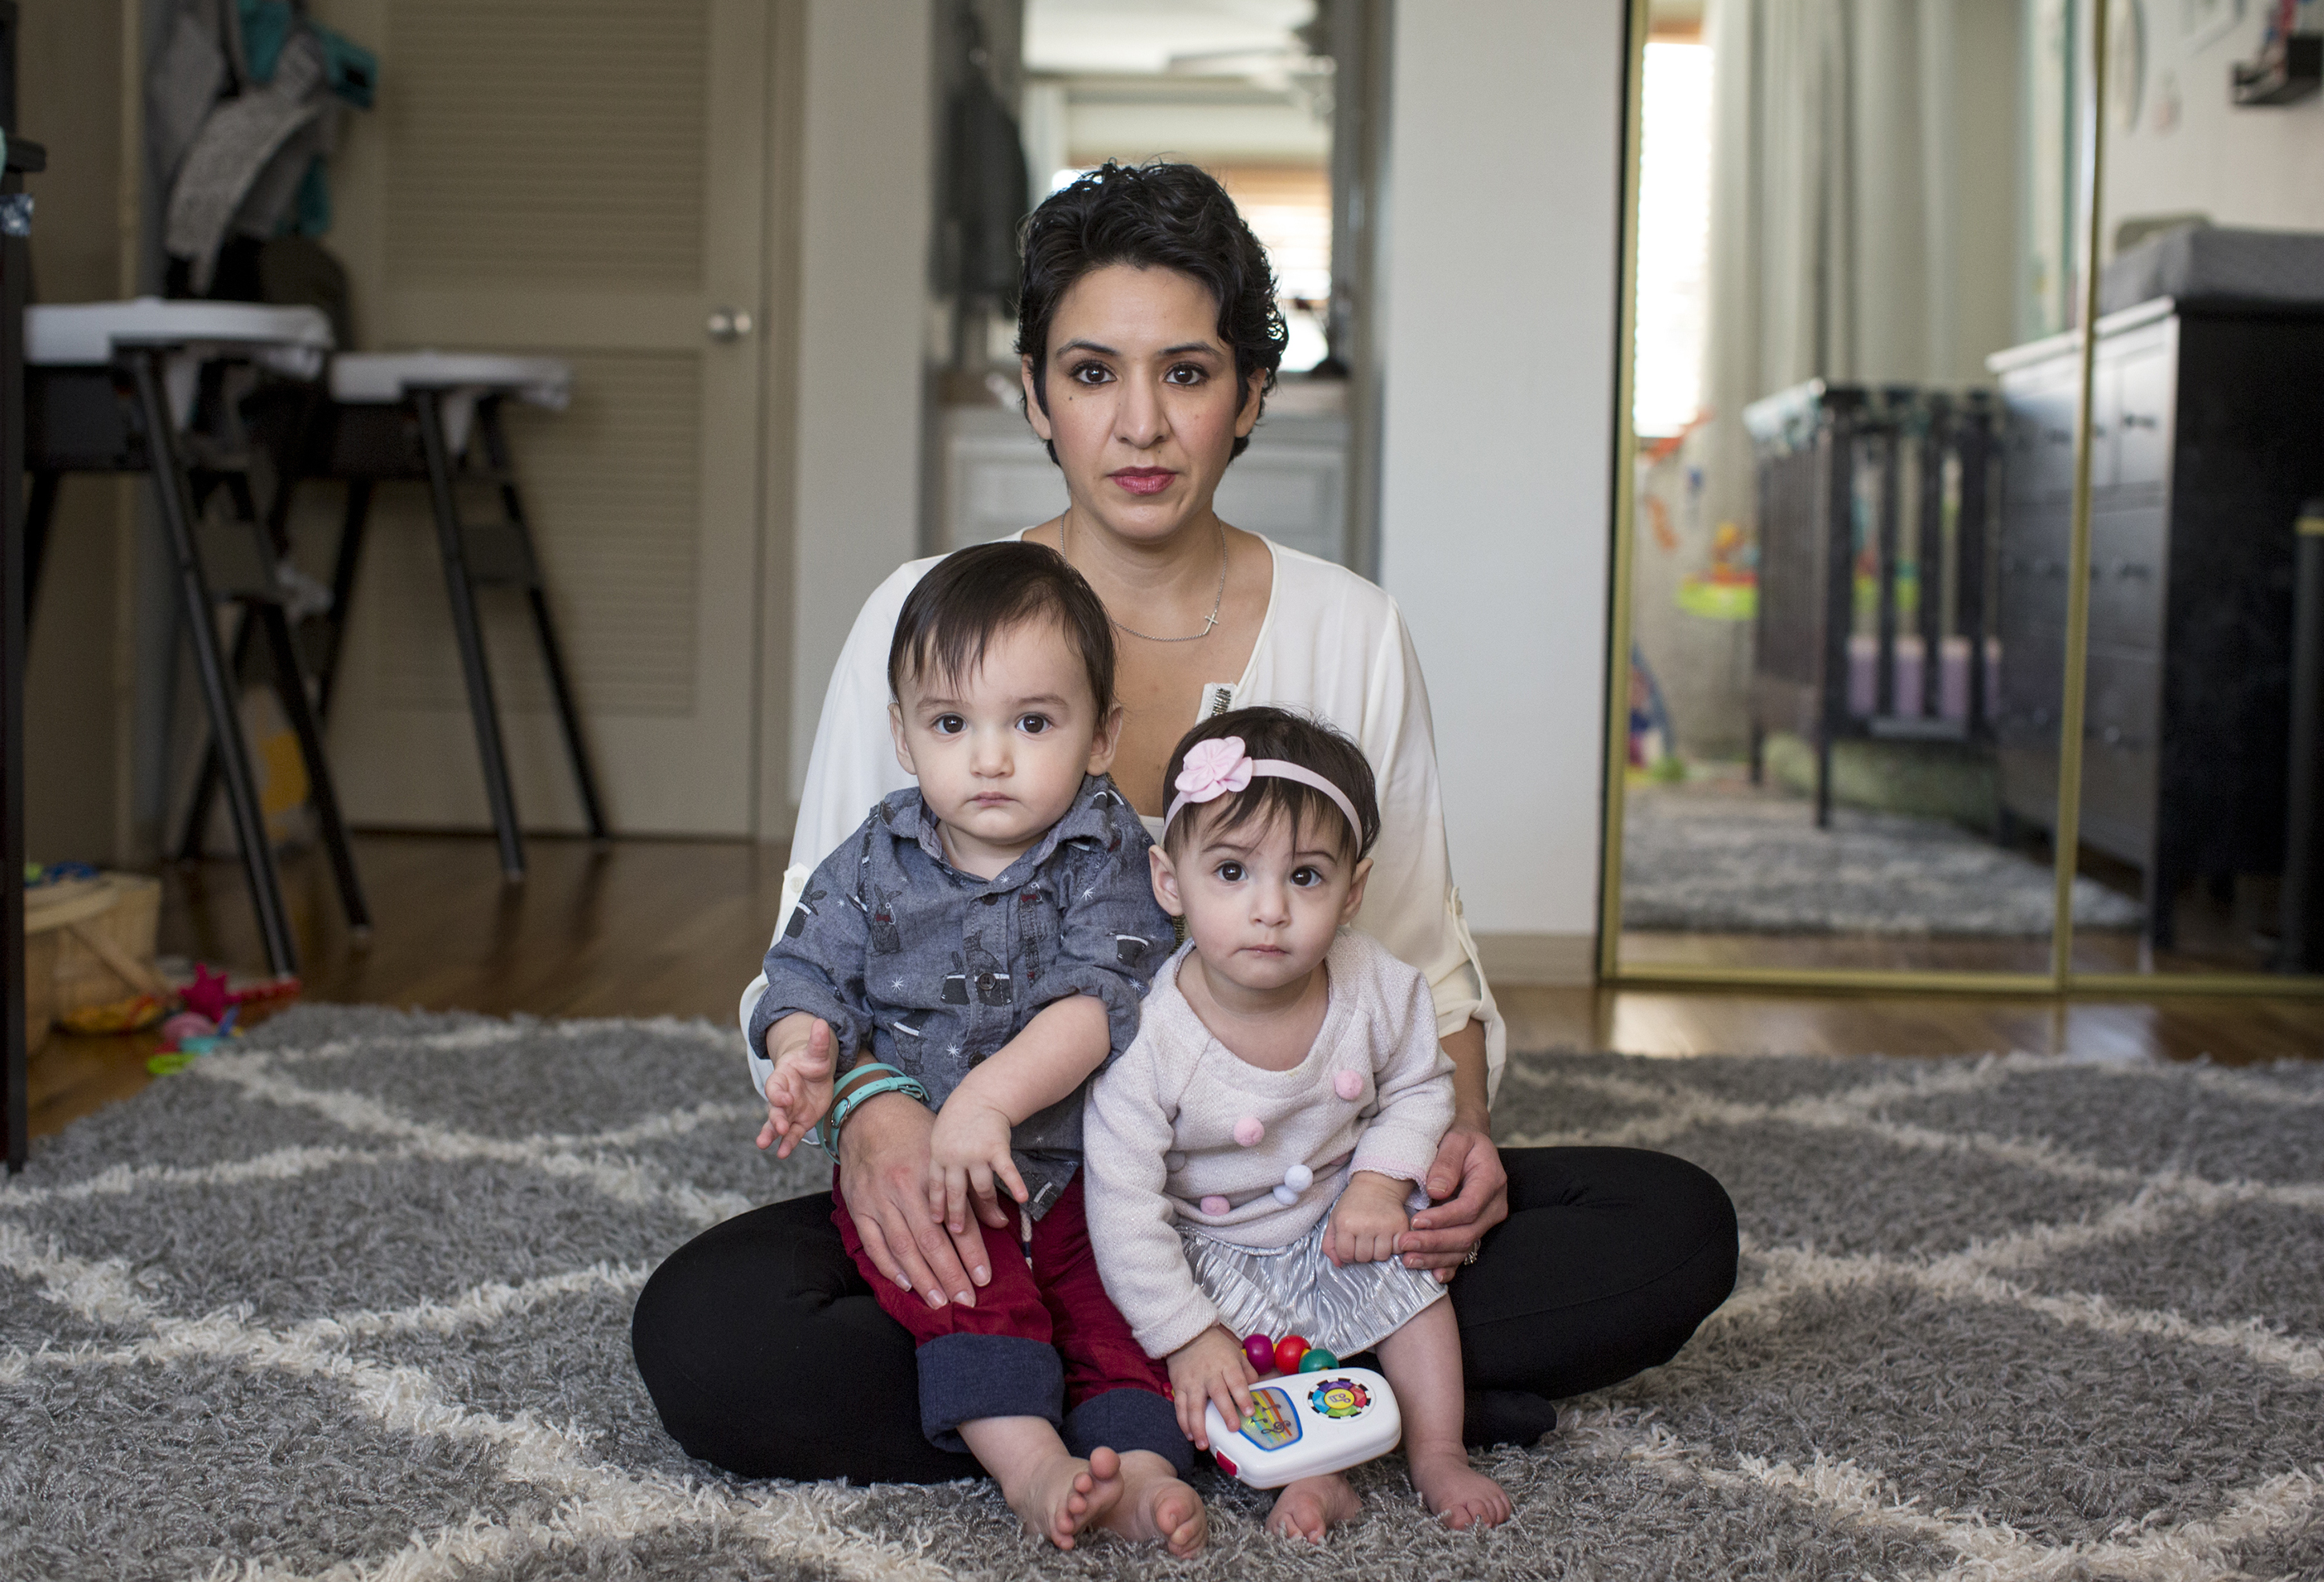 Leah Bahrencu, 35, of Austin, Texas, developed an infection after an emergency C-section to deliver twins Lukas and Sorana, now 11 months.